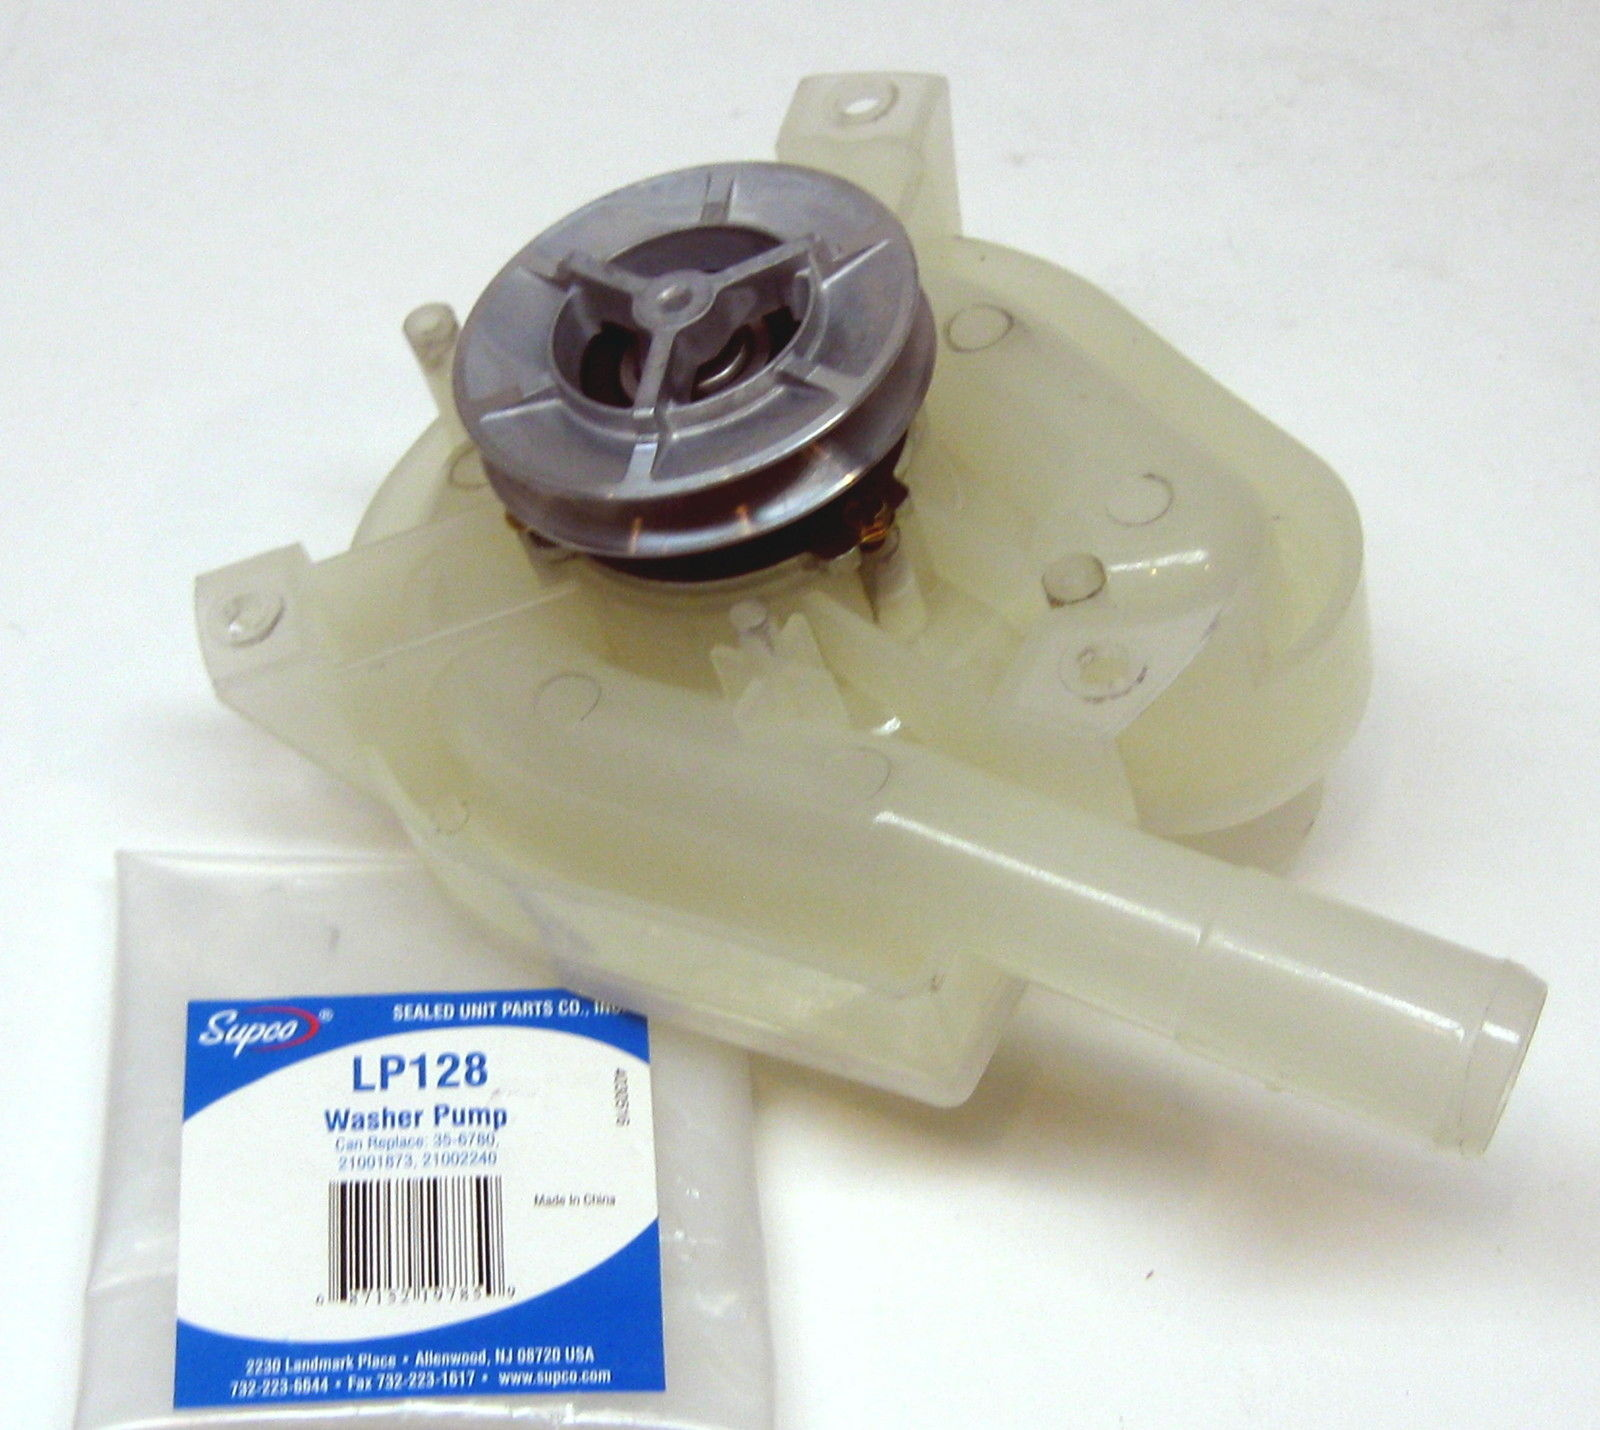 Lp128 Washer Drain Pump For Whirlpool Maytag Wp35 6780